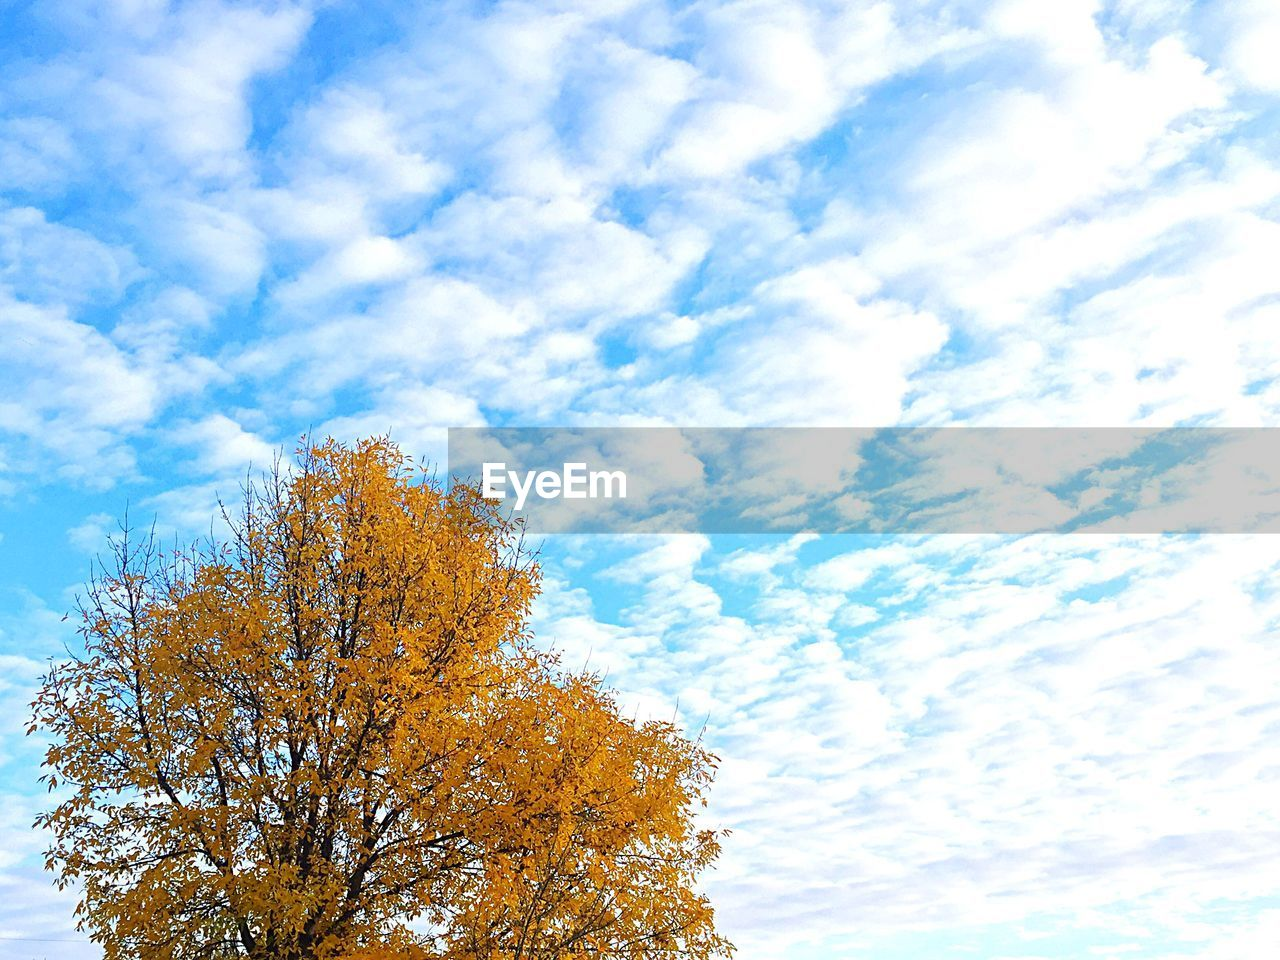 sky, cloud - sky, tree, nature, beauty in nature, low angle view, autumn, day, change, tranquility, leaf, growth, no people, outdoors, scenics, branch, blue, close-up